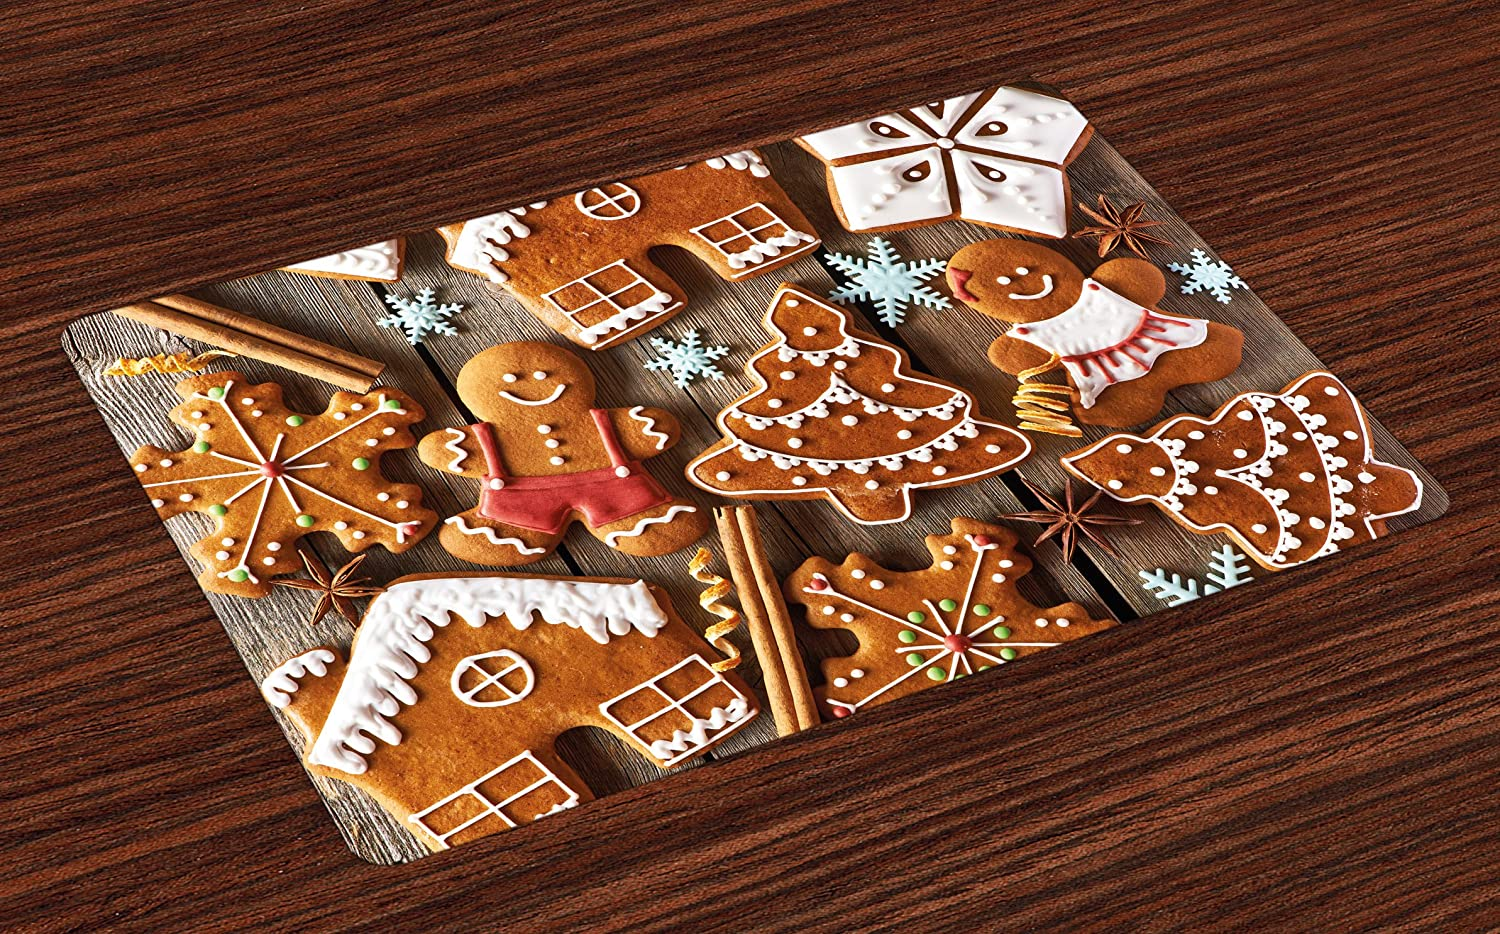 Ambesonne Gingerbread Man Place Mats Set of 4, Tasty Looking Traditional Cookies Little Snowflakes Cinnamon, Washable Fabric Placemats for Dining Room Kitchen Table Decor, Umber Pale Brown White